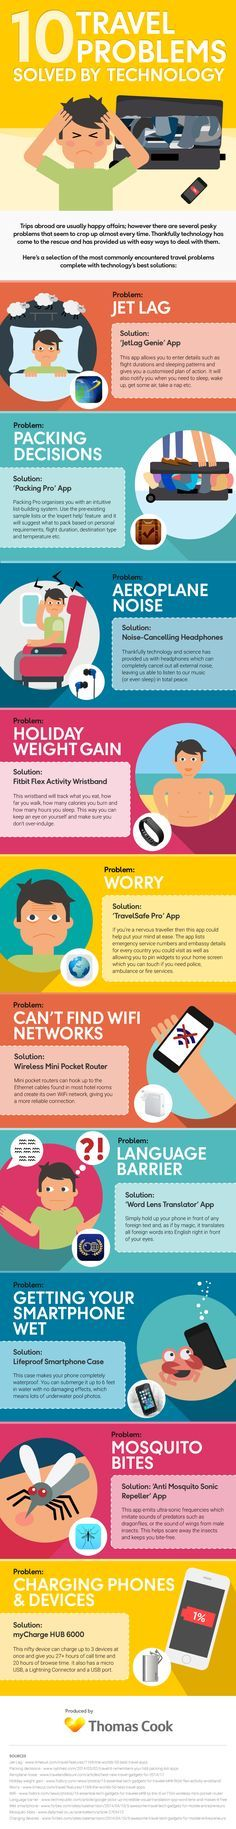 Technology | Tipsographic | More technology tips at http://www.tipsographic.com/